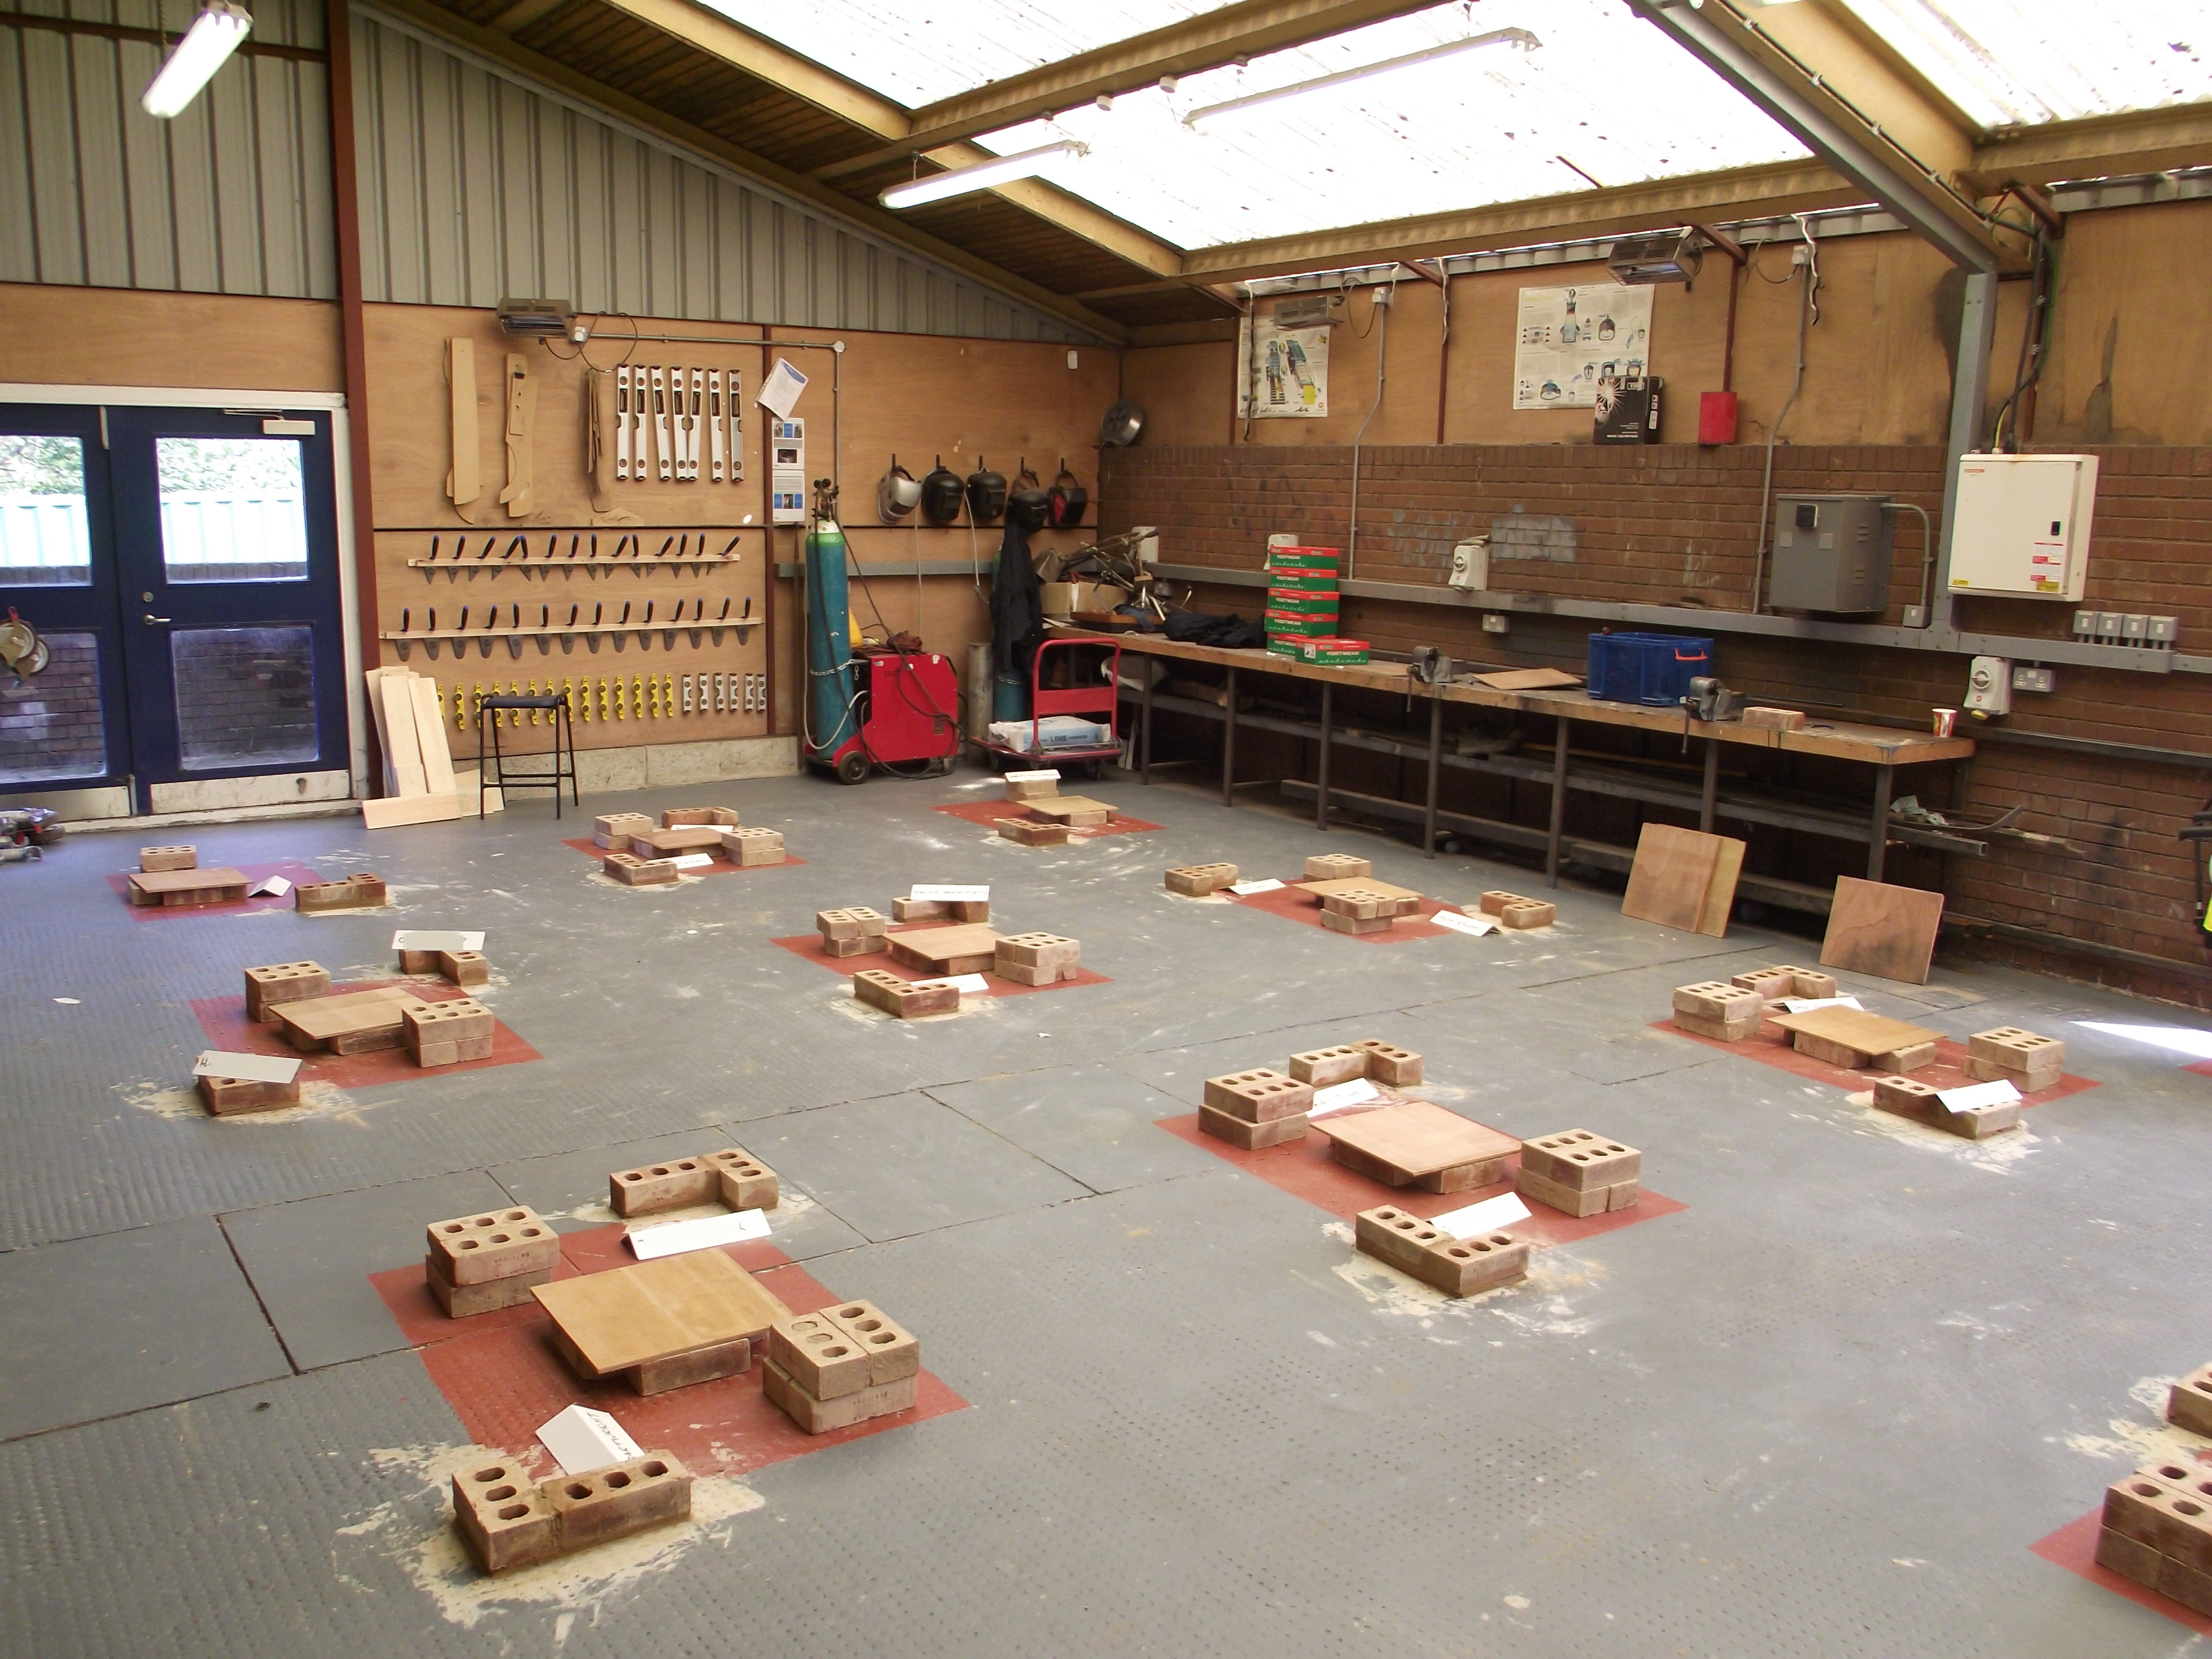 New construction course launched at Eckington School